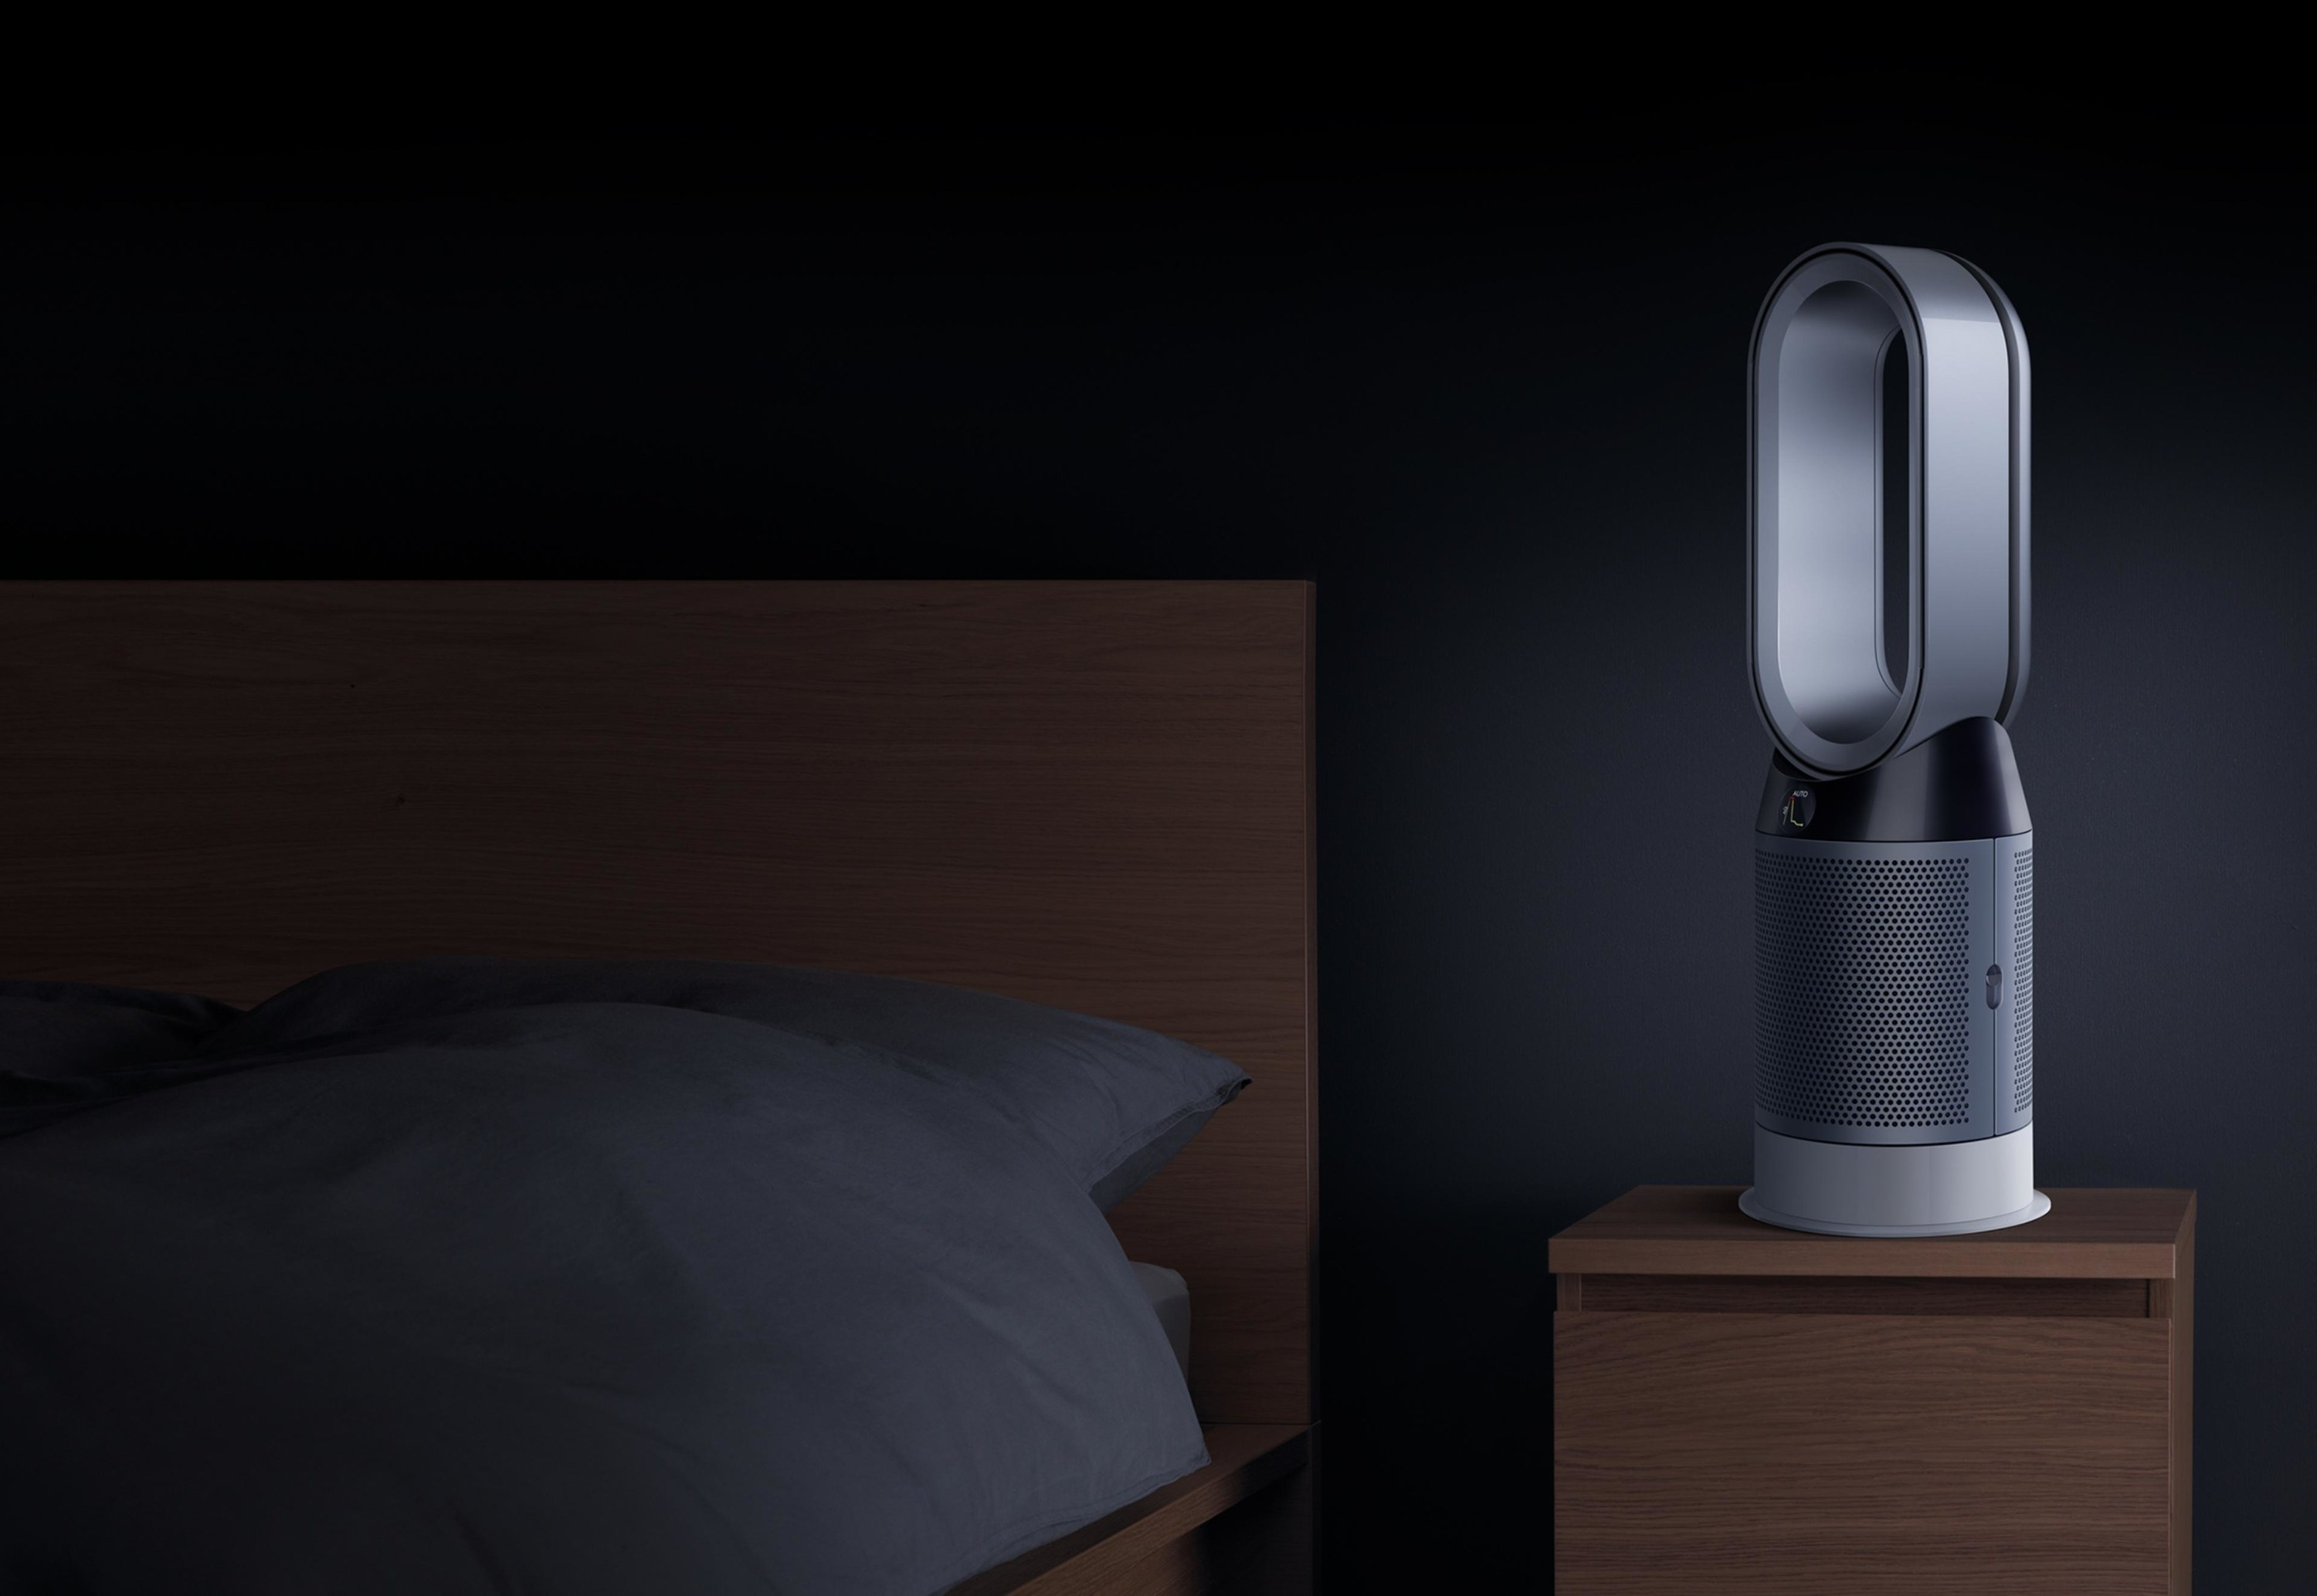 The device on a nightstand